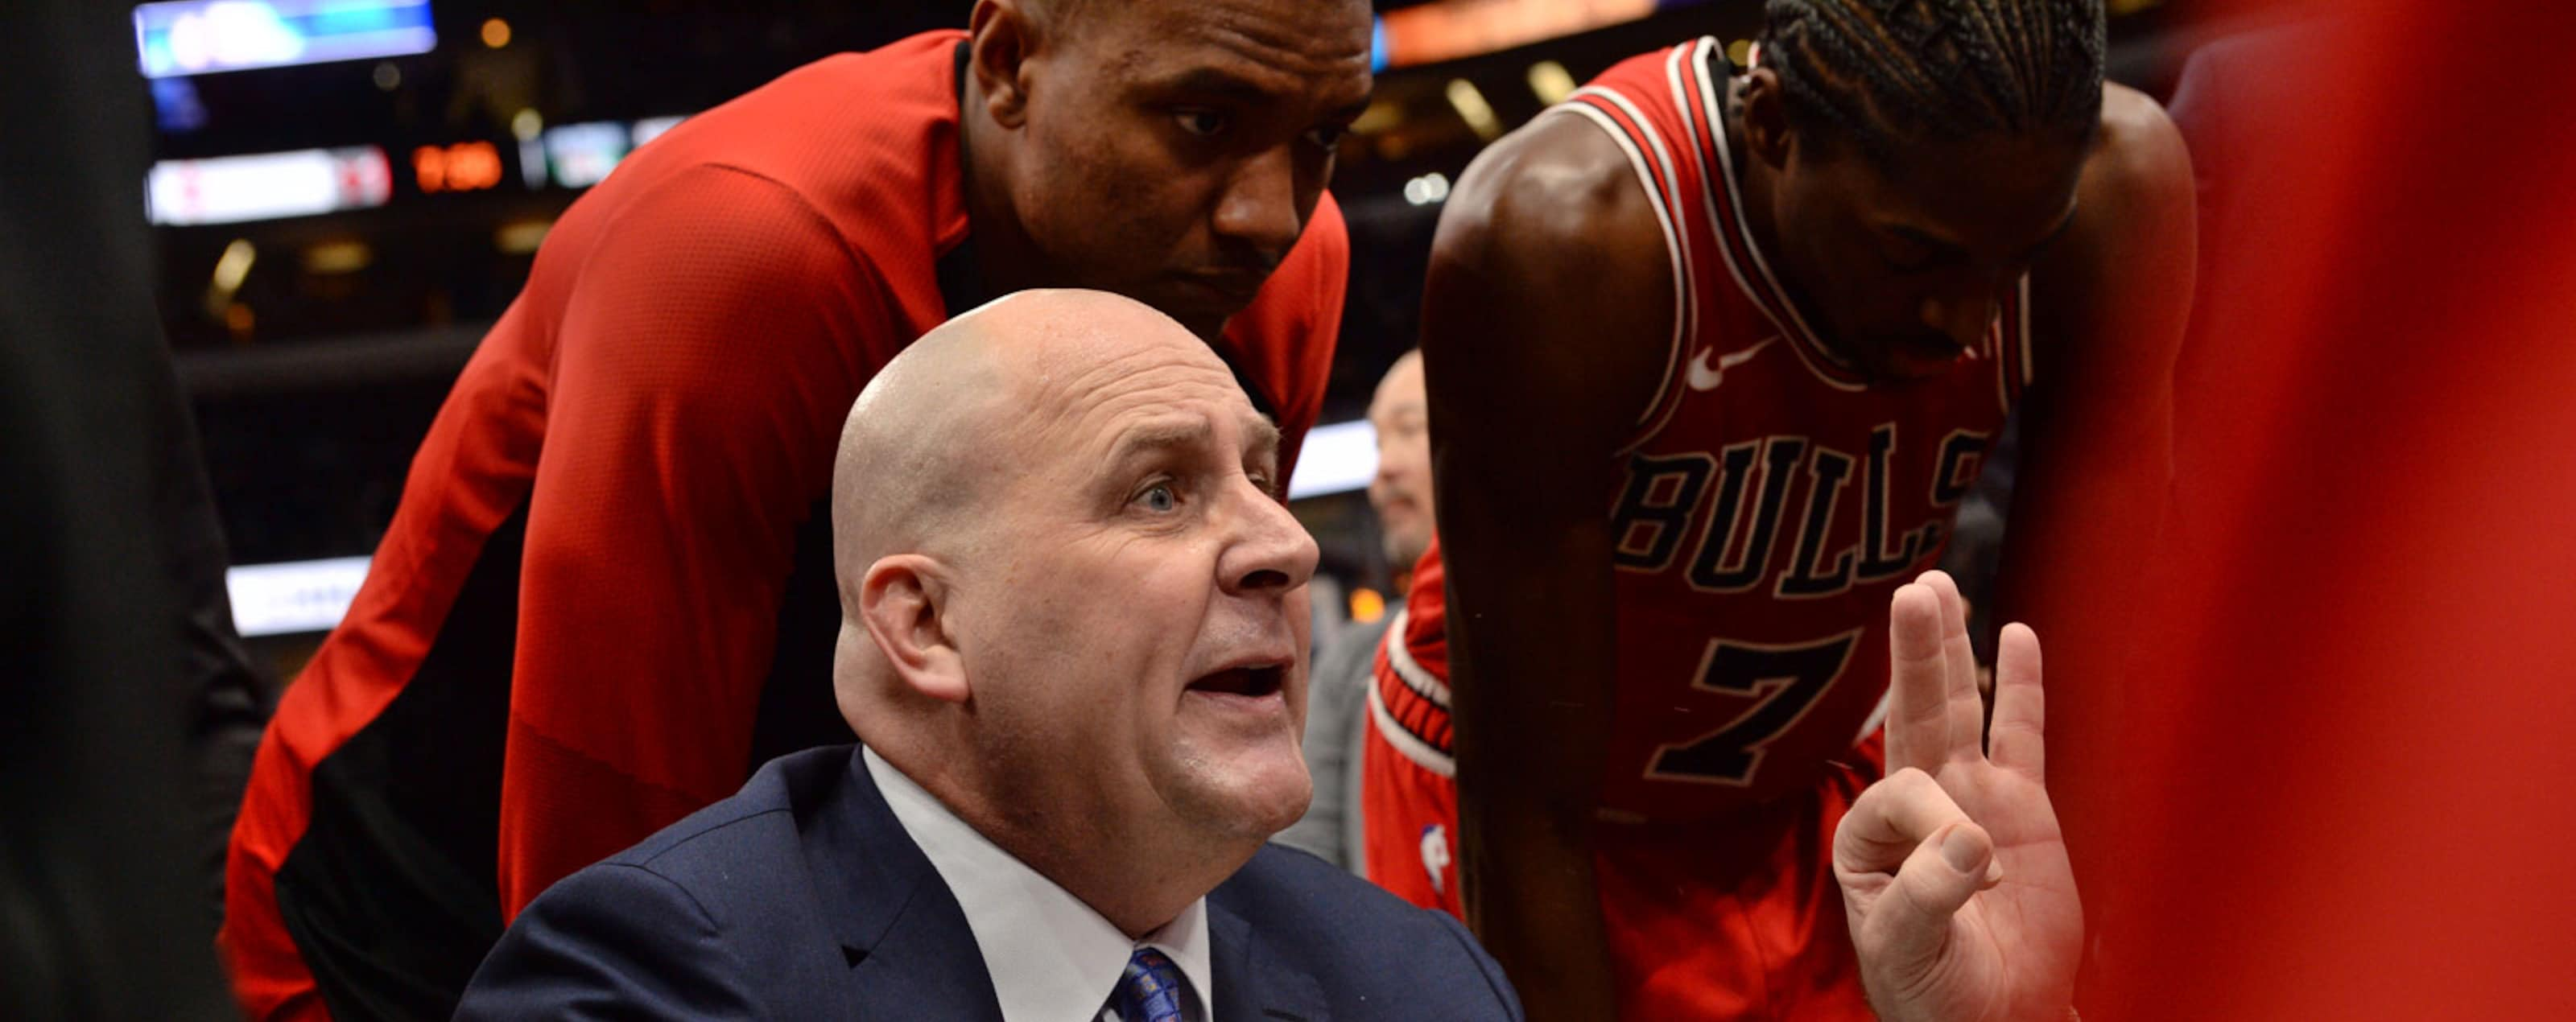 Coach Jim Boylen during a team huddle surrounded by players Wendell Carter Jr. and Justin Holiday.